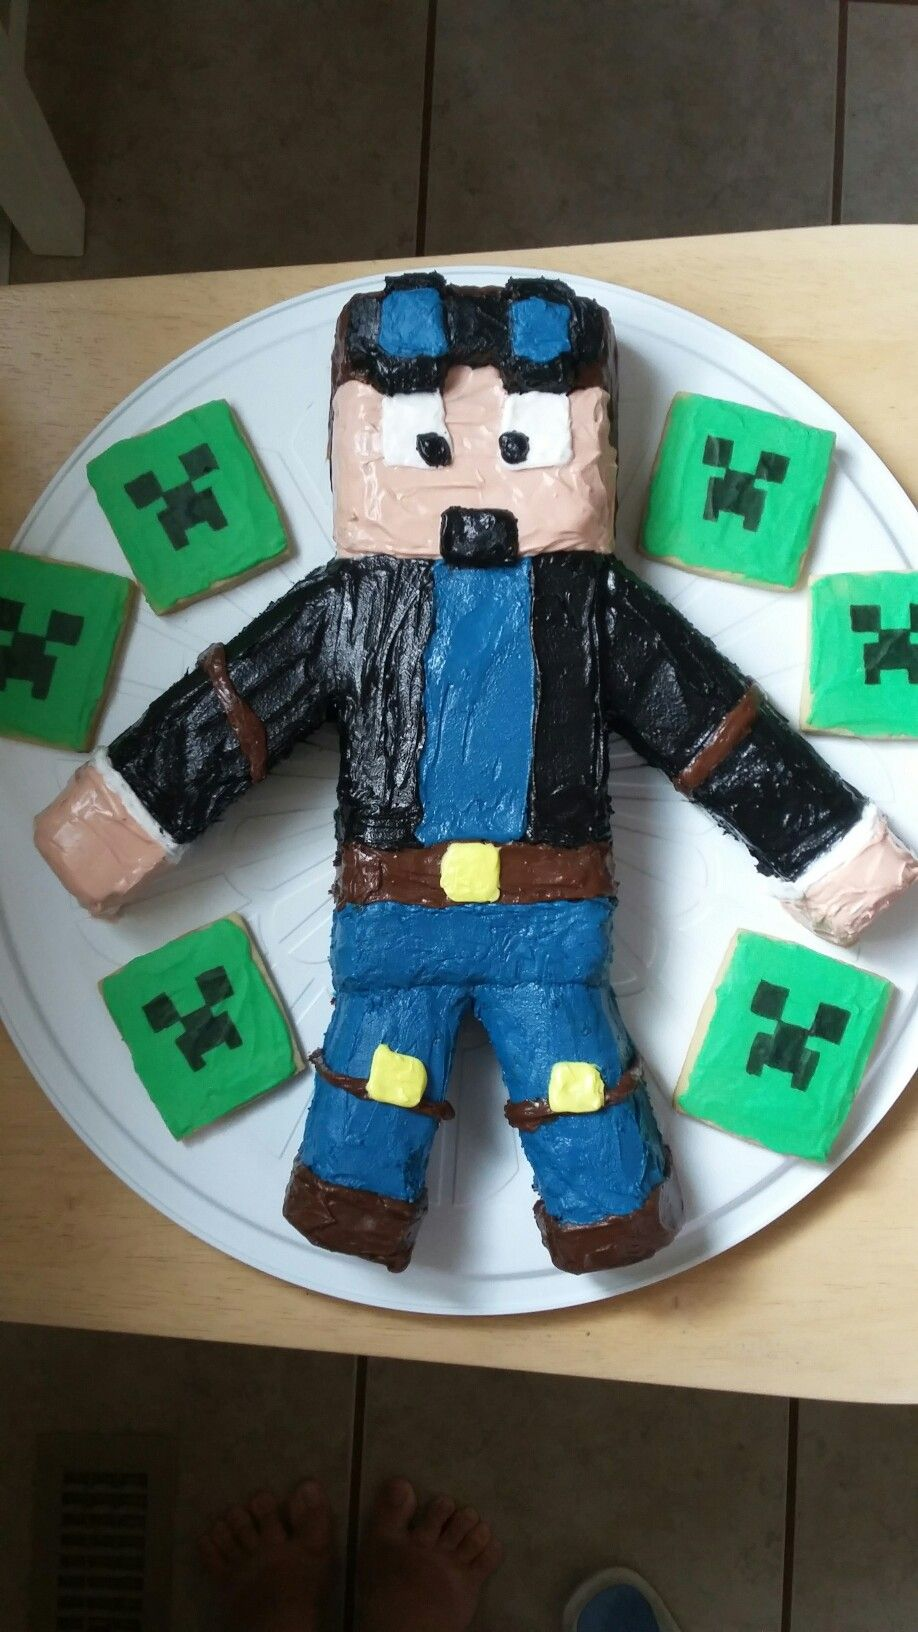 minecraft cake recipe.  Cake Minecraft Party  Dantdm Cake And Creeper Cookies Inside Cake Recipe